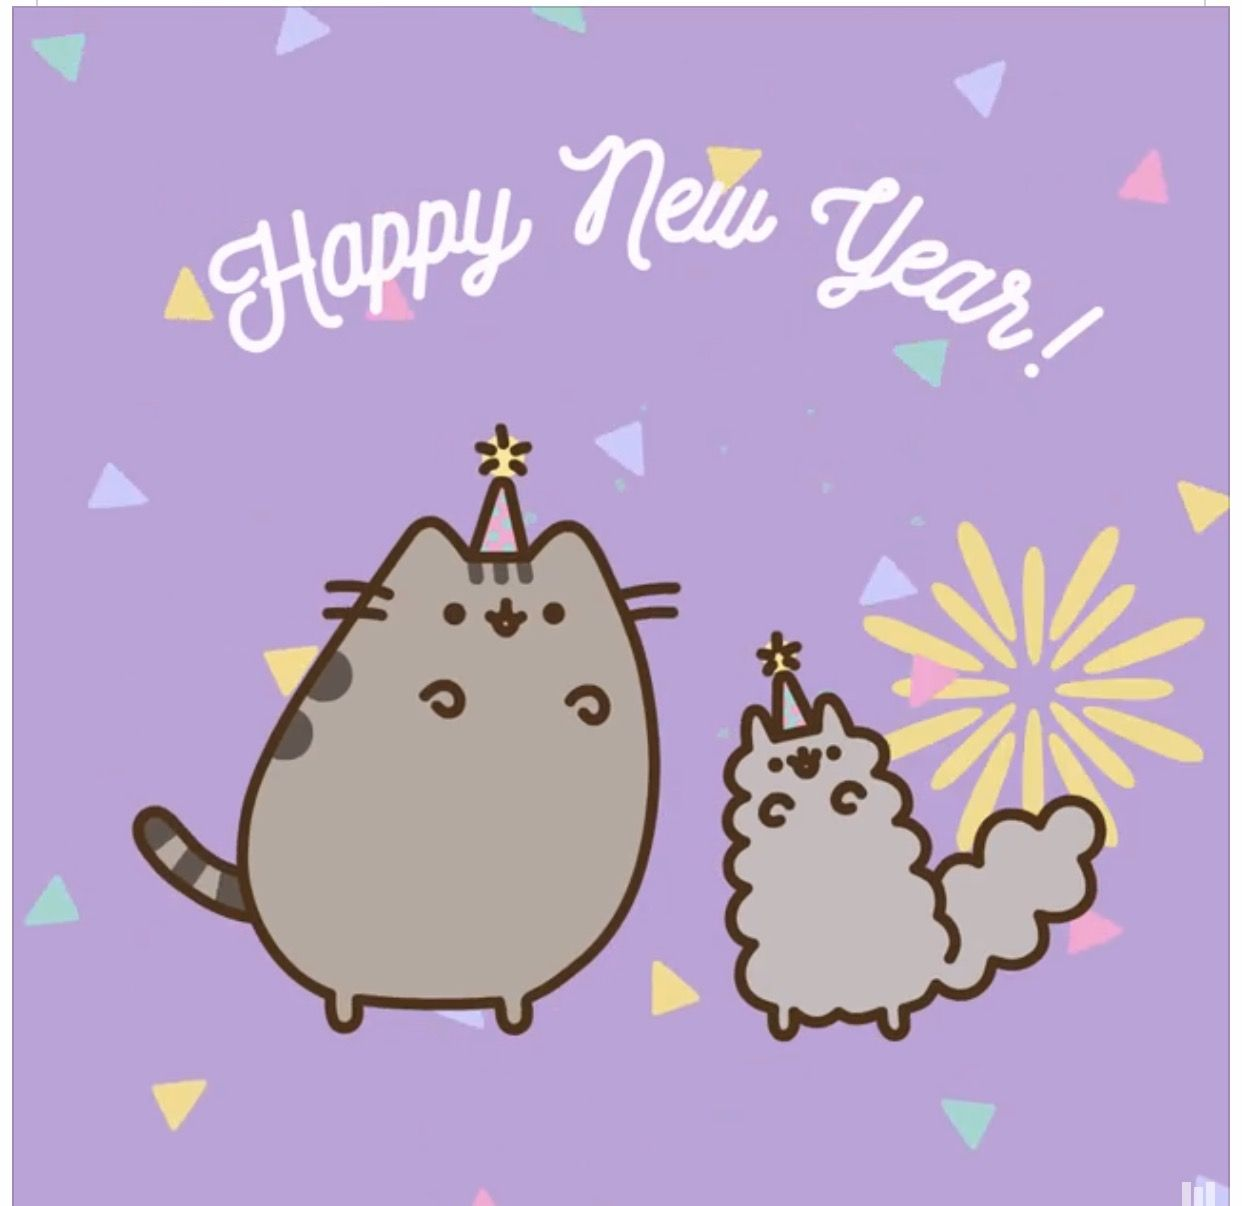 Attractive Happy New Year From Pusheen And Friends! Get Some Yourself Some Pawtastic  Adorable Cat Shirts, Cat Socks, And Other Cat Apparel By Tapping The Pin!